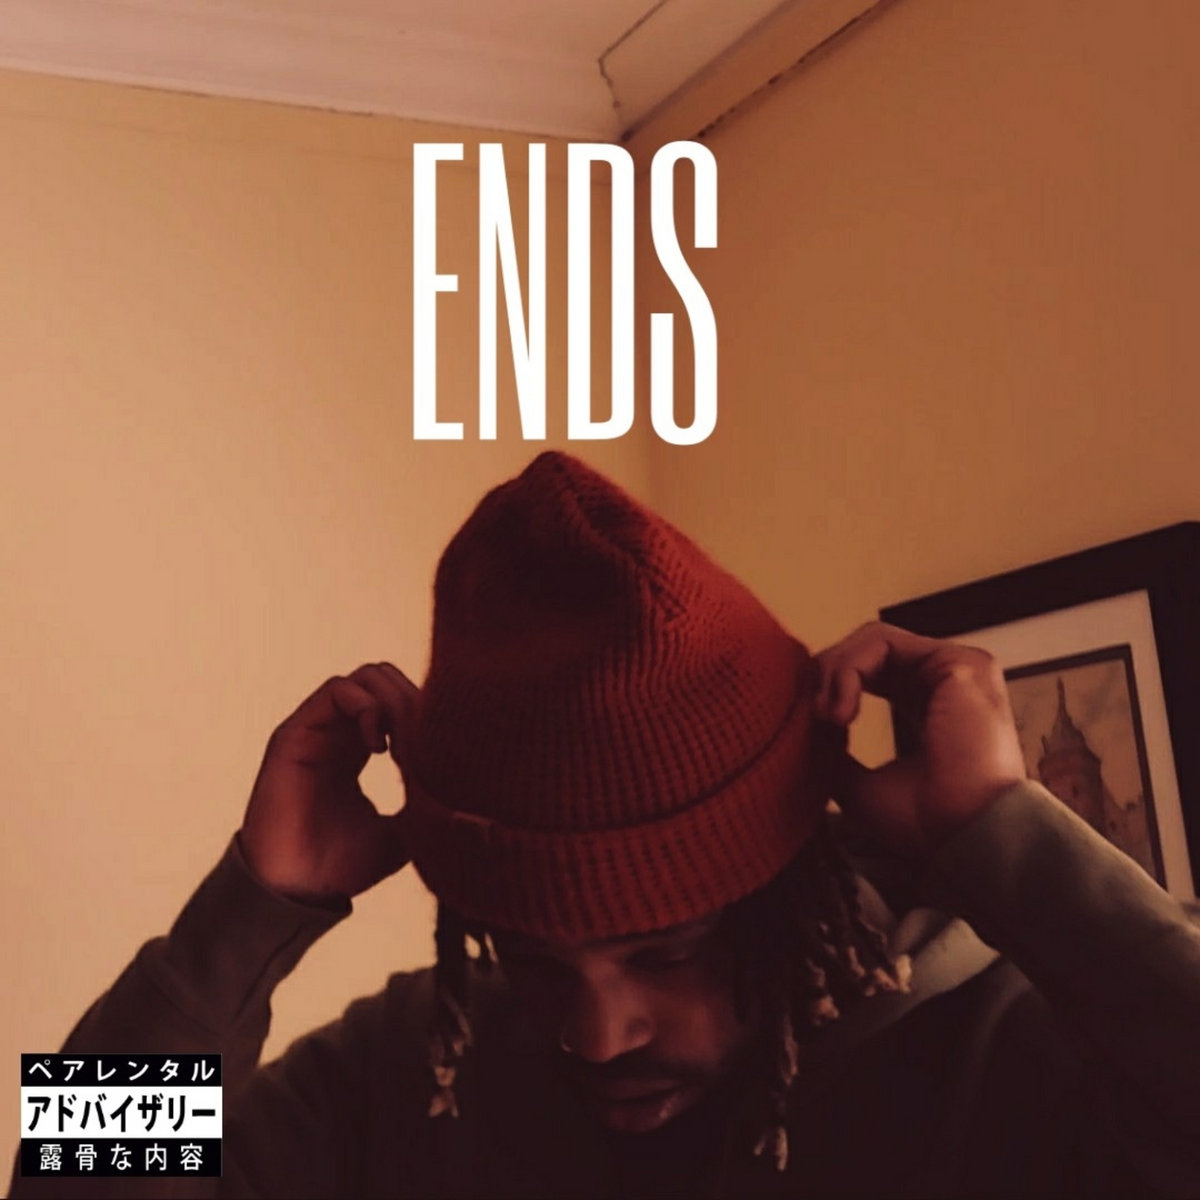 ENDS by Dex Amora